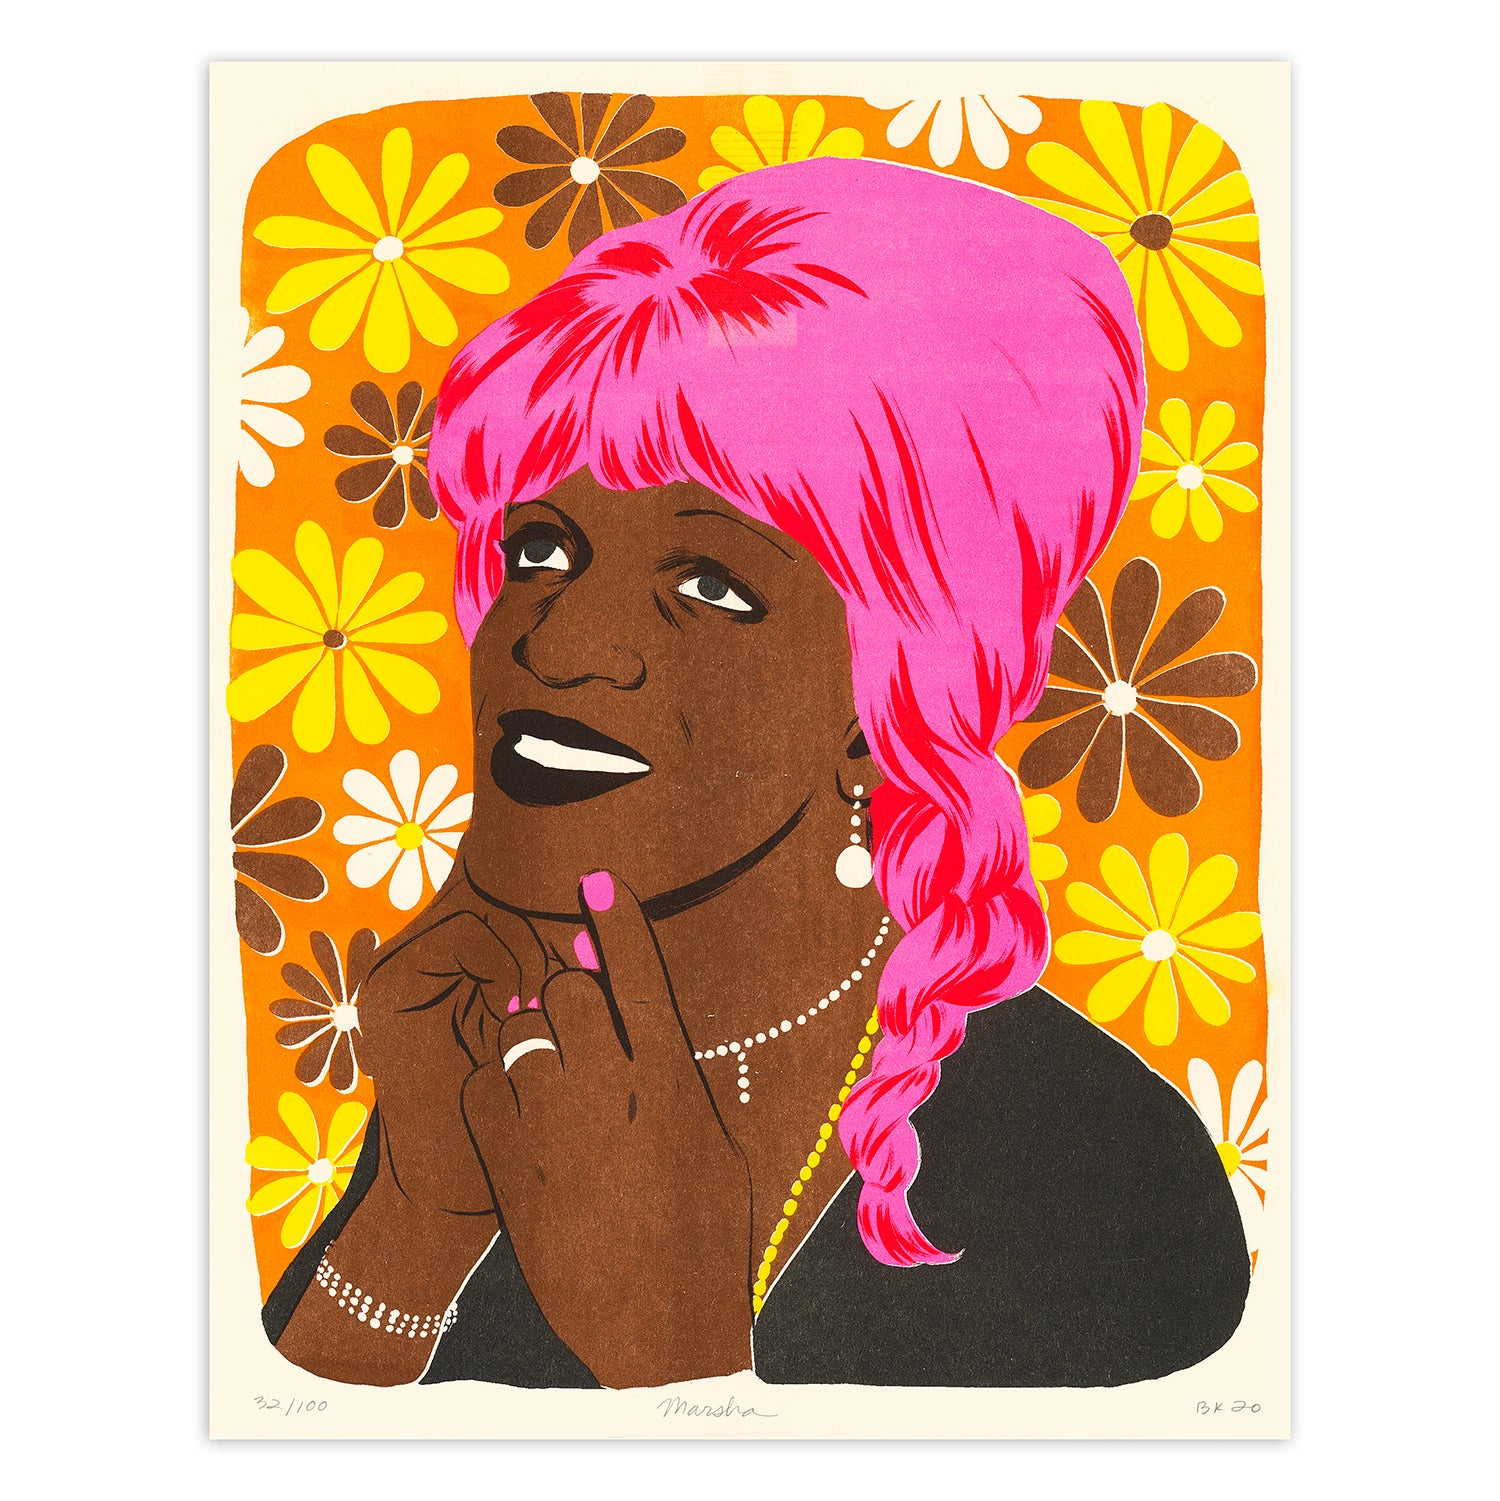 Image of Marsha P Johnson Fundraiser Print